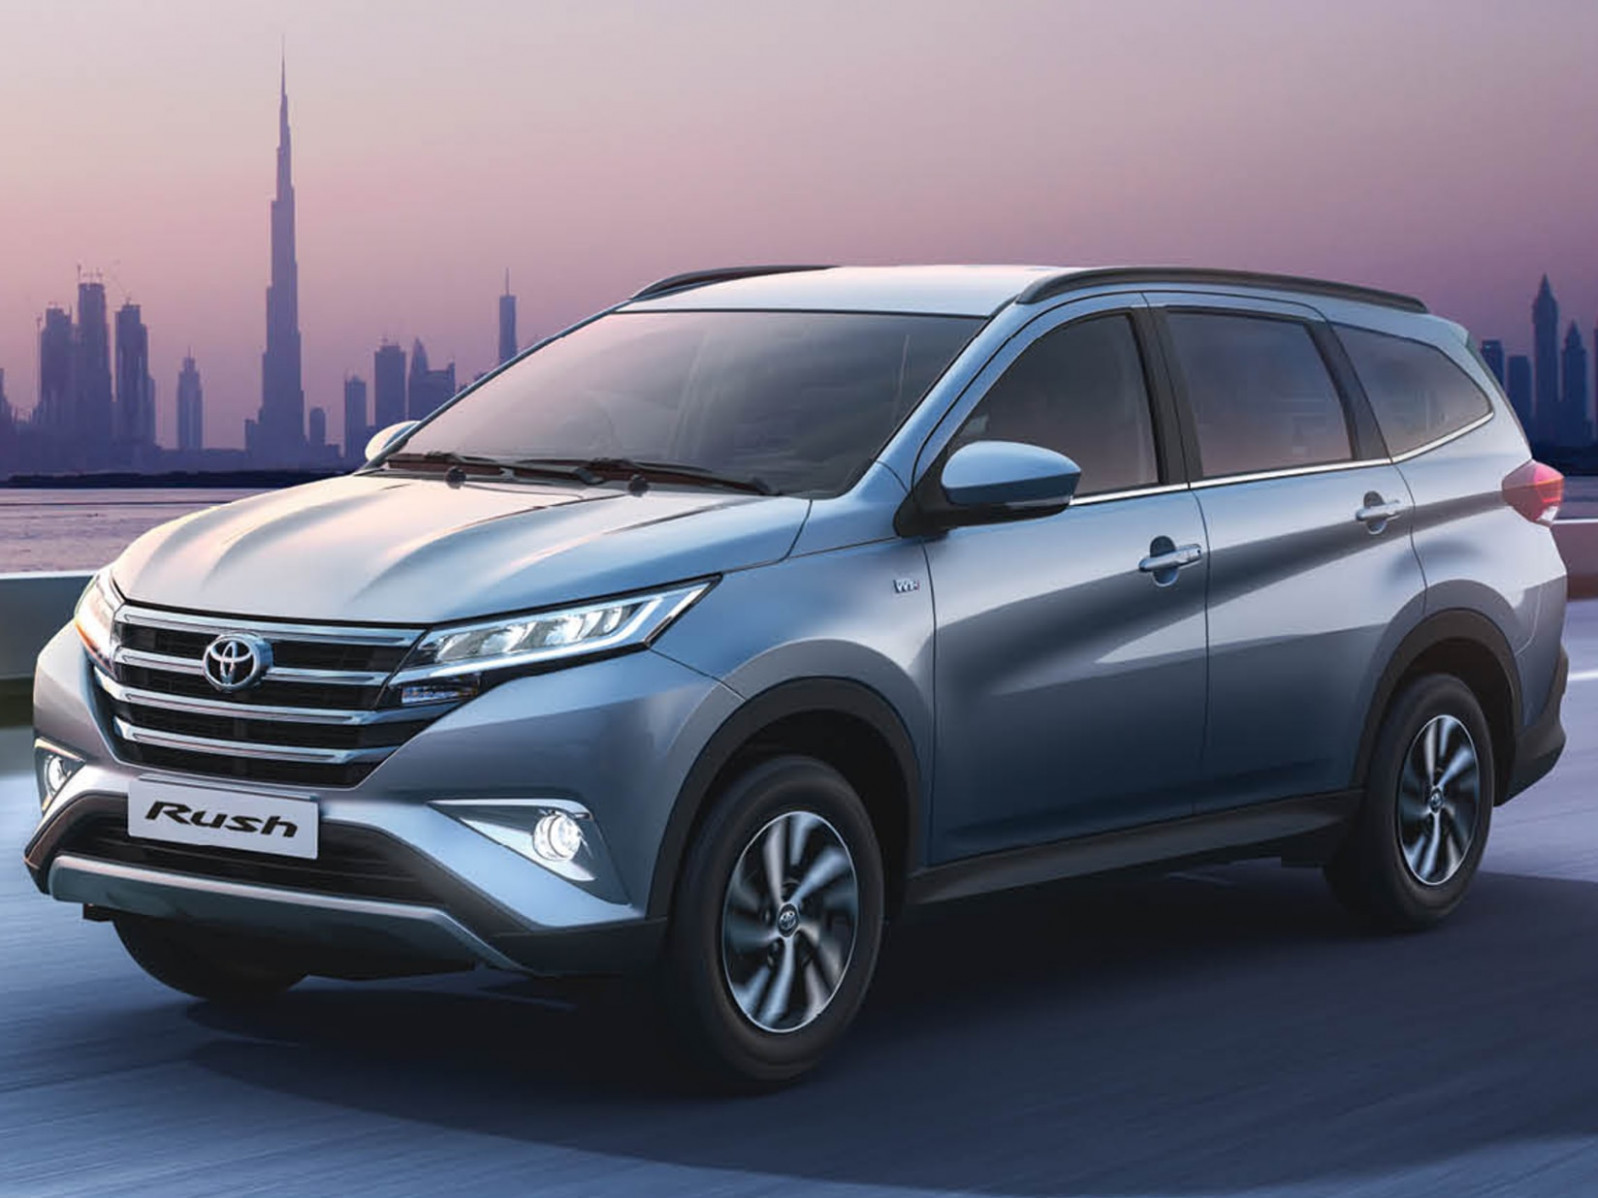 New Toyota Rush 7 for Sale in the UAE | Toyota - 2020 toyota deals